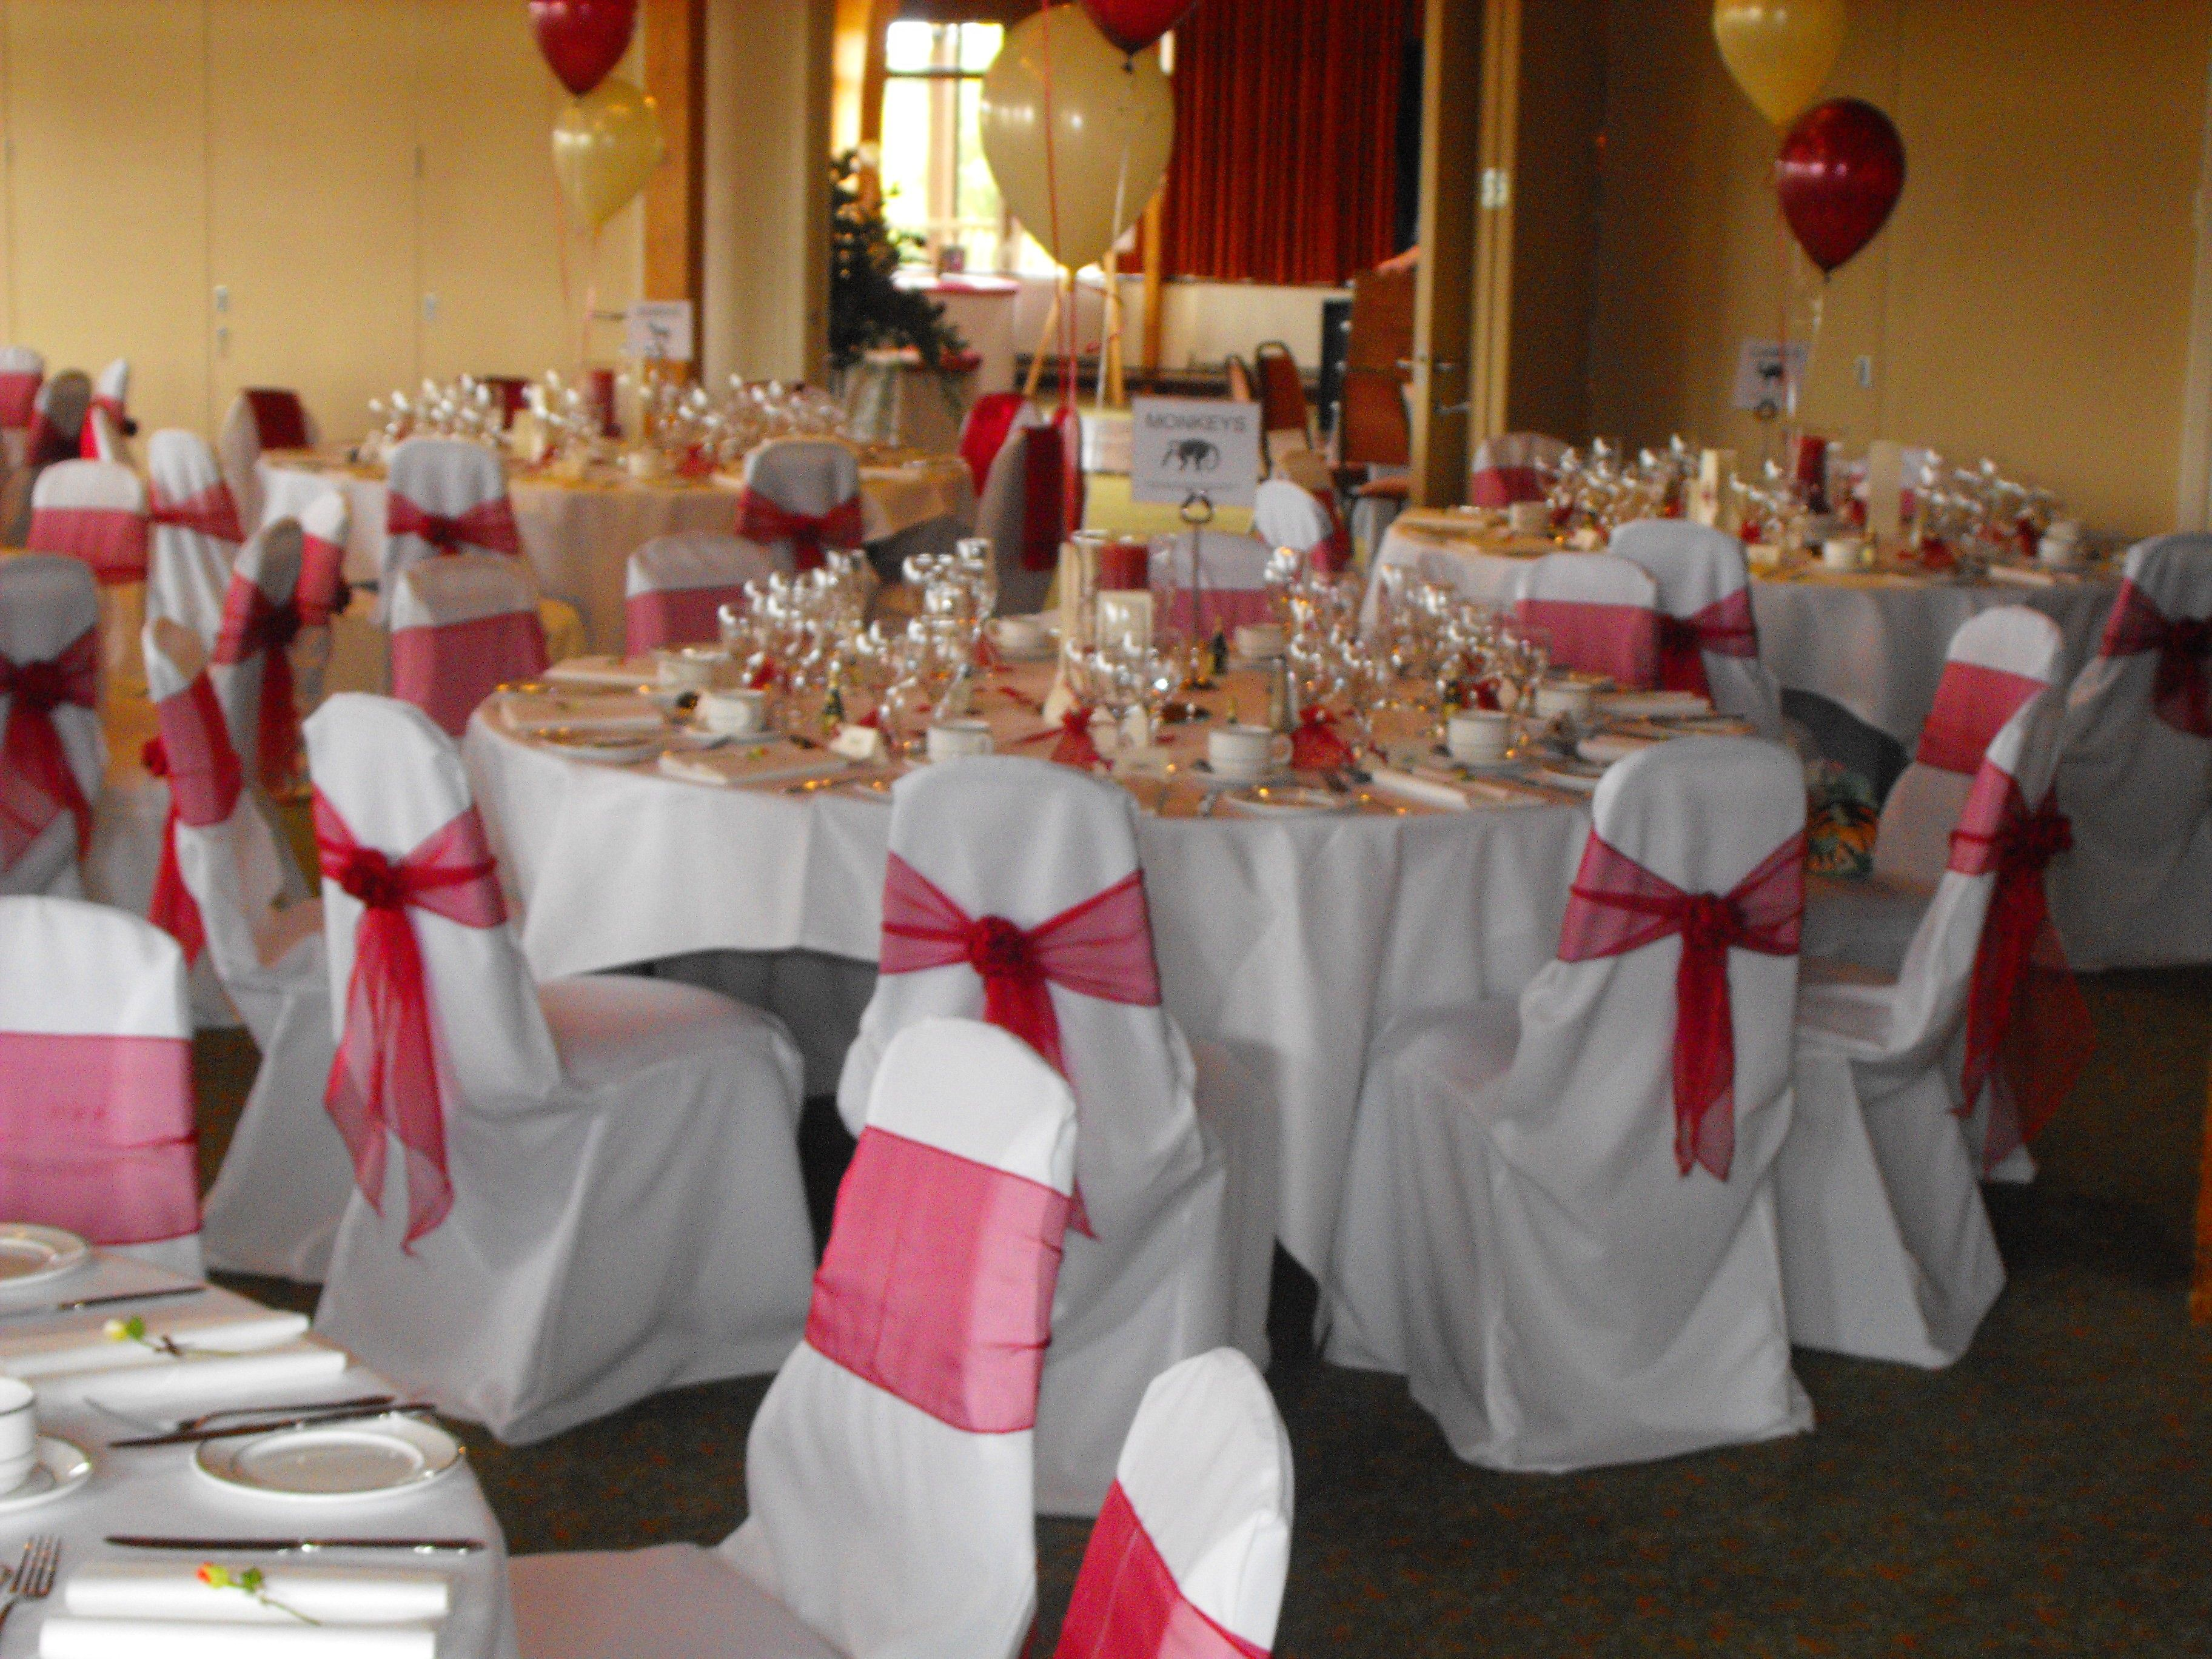 Burgundy Chair Covers Wedding Simply Elegant And Linens Organza Rose Design Sashes On White